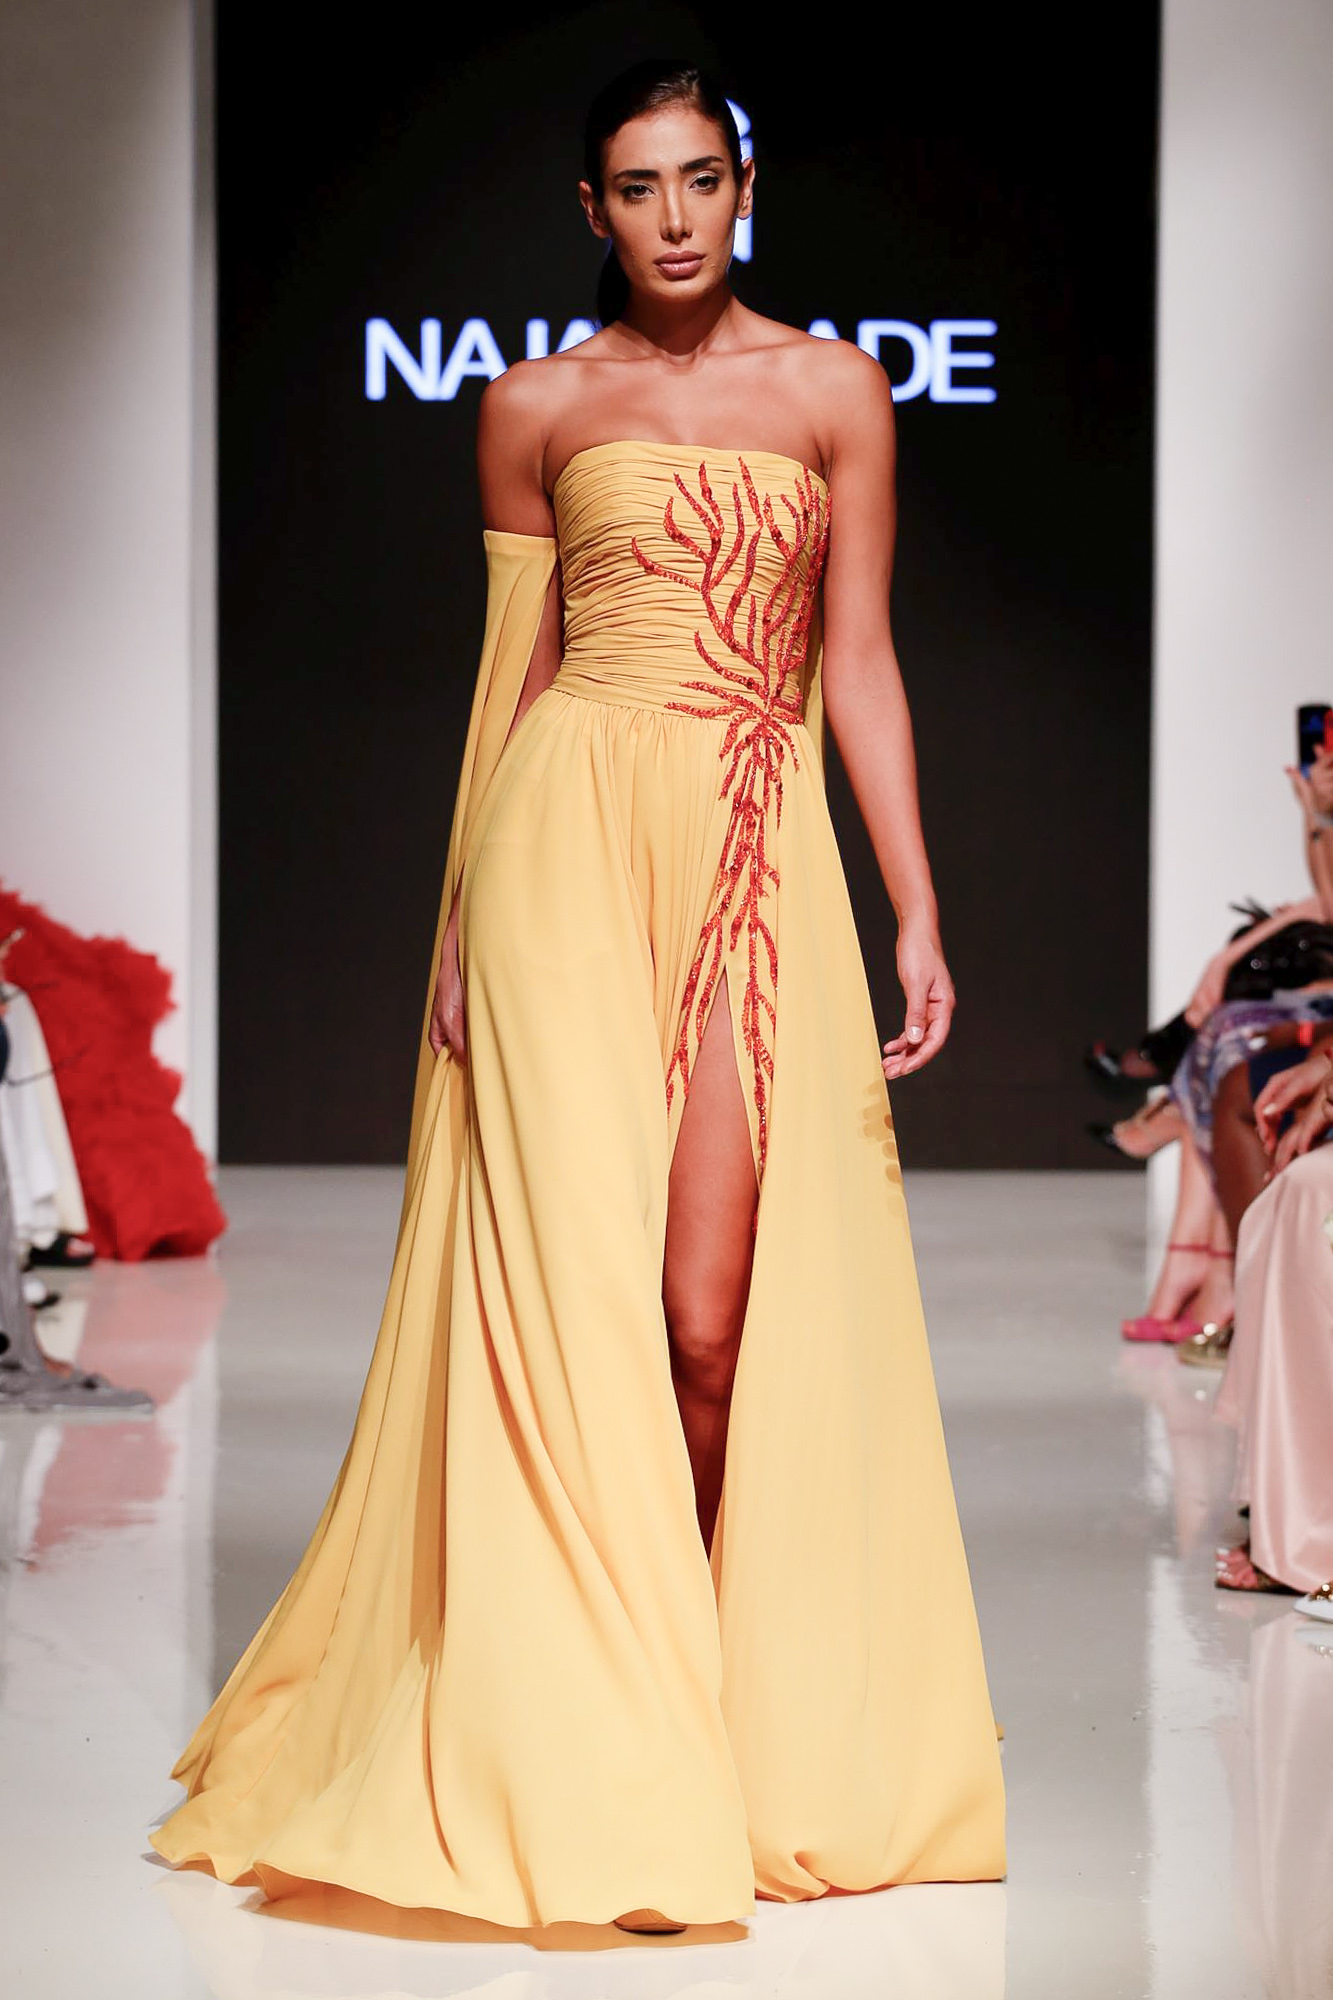 Naja Saade fashion show, Arab Fashion Week collection Spring Summer 2020 in Dubai